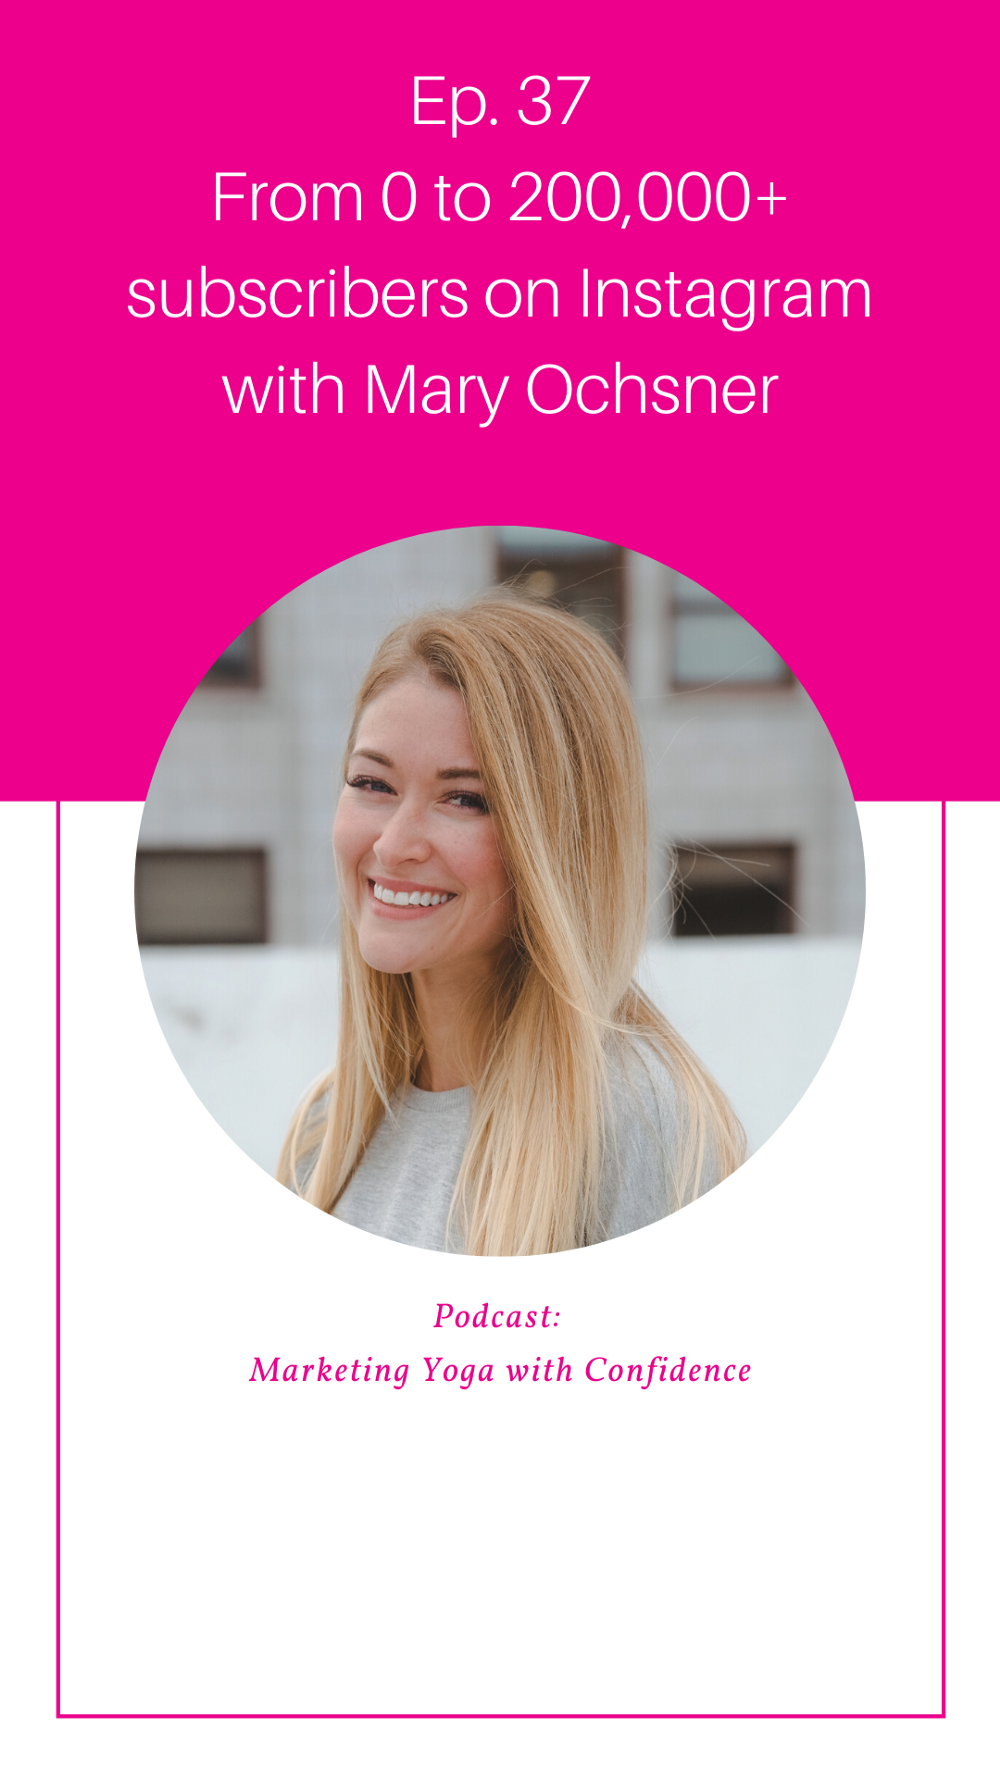 How to use Instagram to grow your yoga business with Mary Ochsner